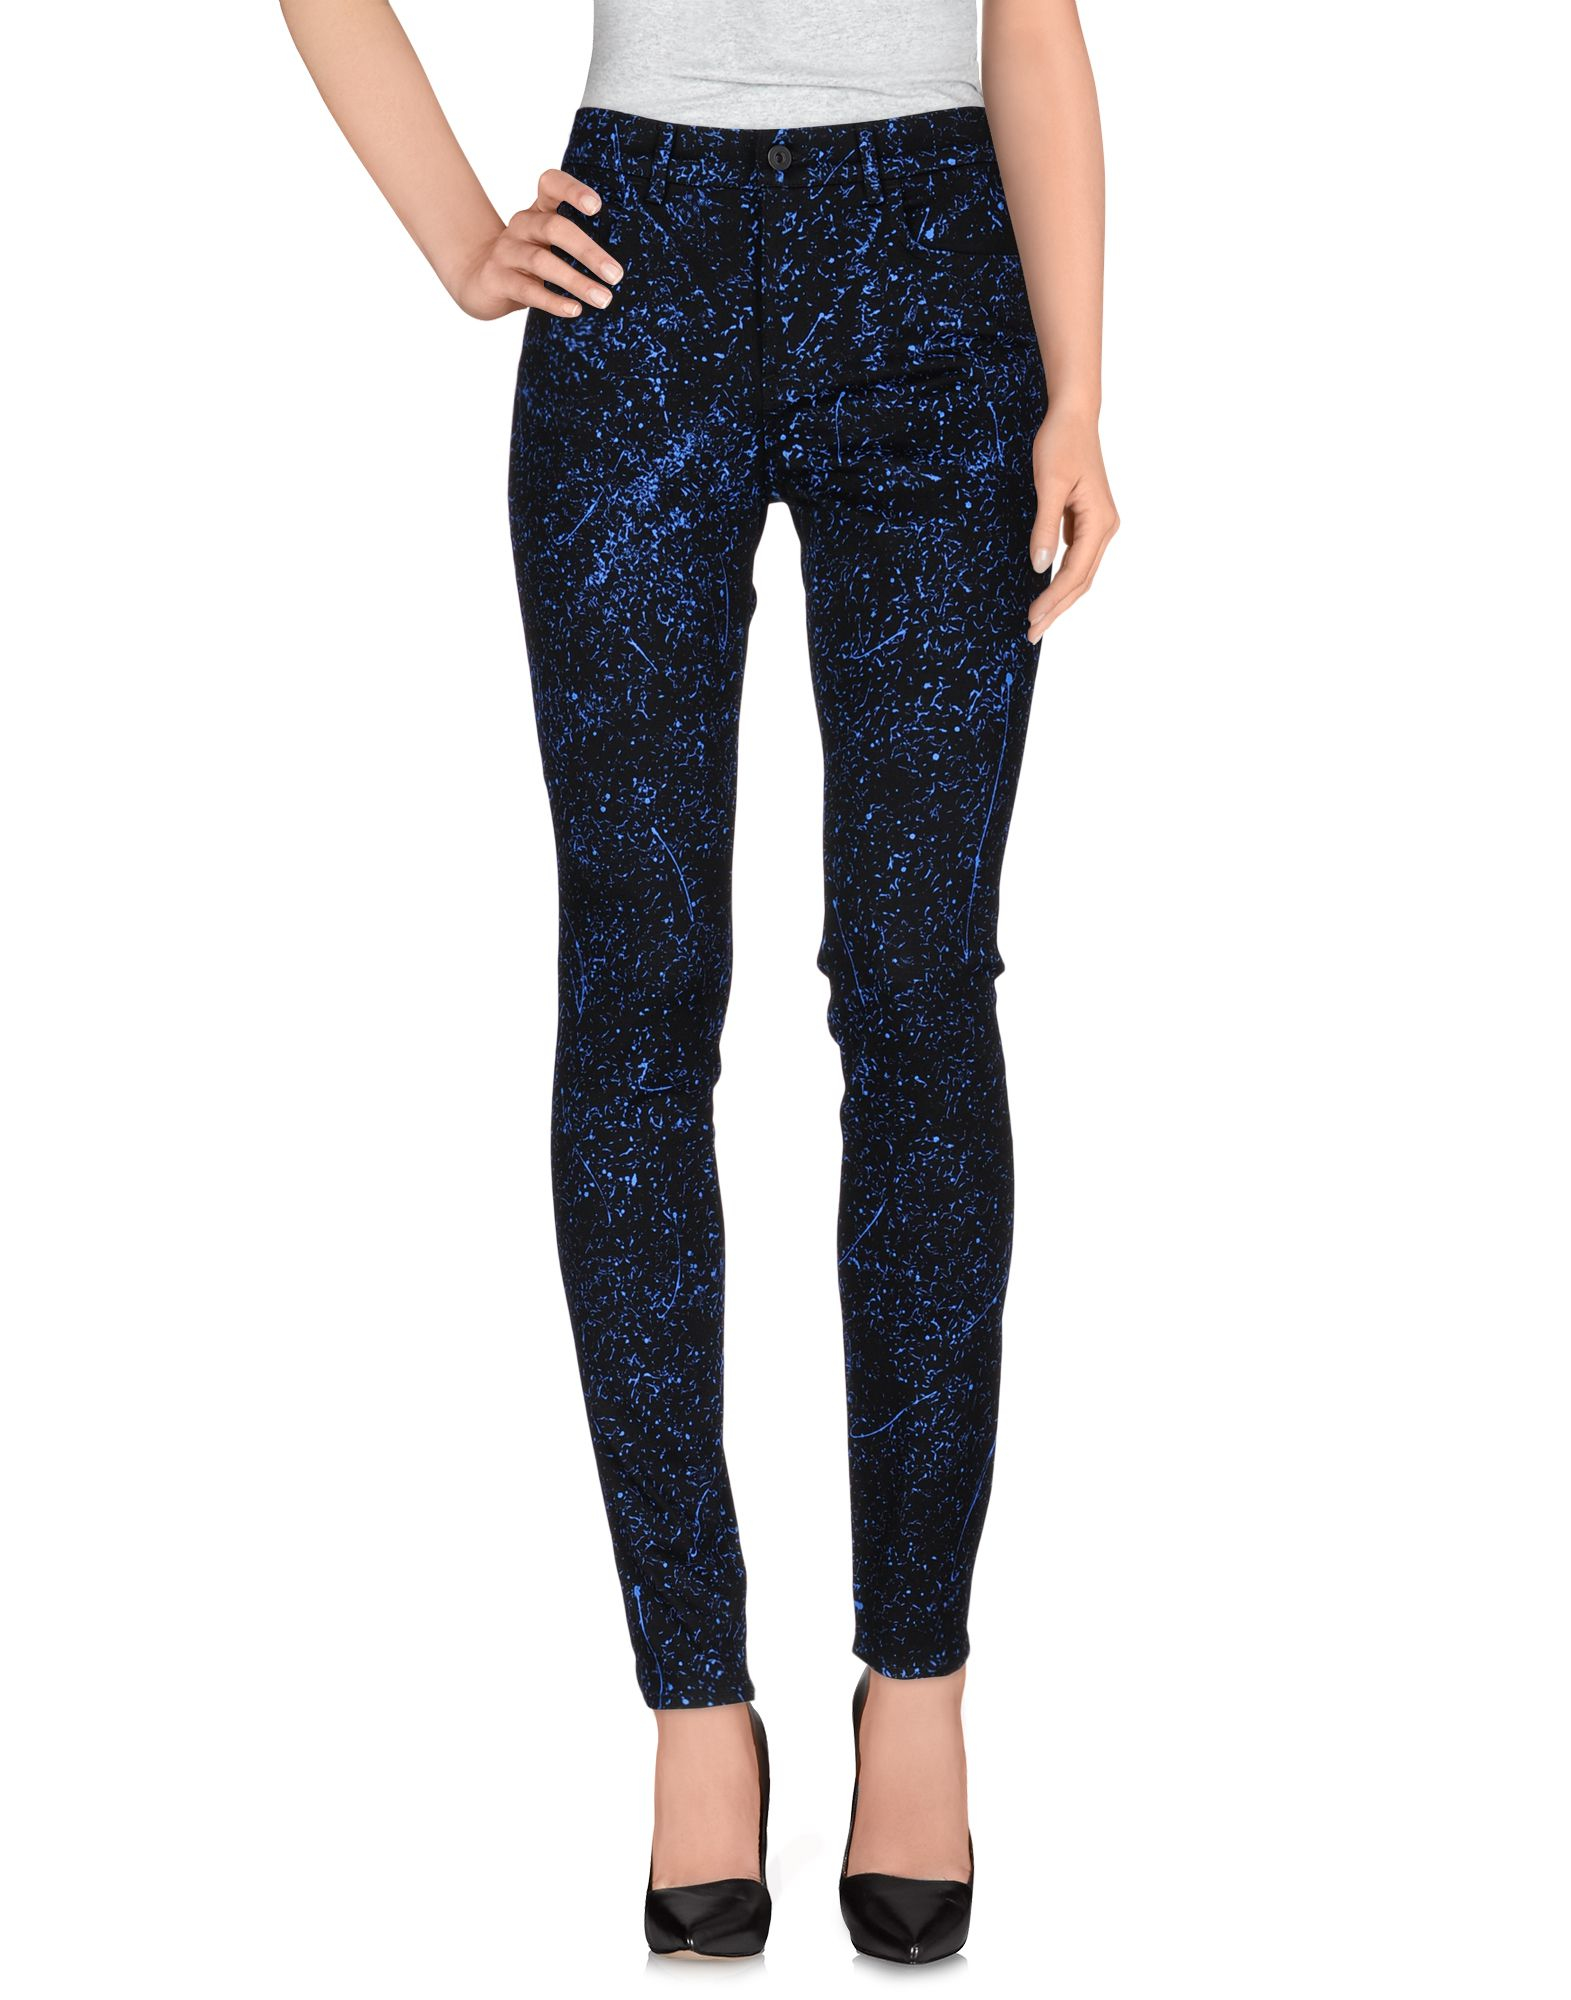 Footlocker Finishline Online Proenza Schouler Woman Cotton-chambray Straight-leg Pants Light Denim Size 0 Proenza Schouler In China Cheap Online Geniue Stockist Cheap Price afZ8A419N